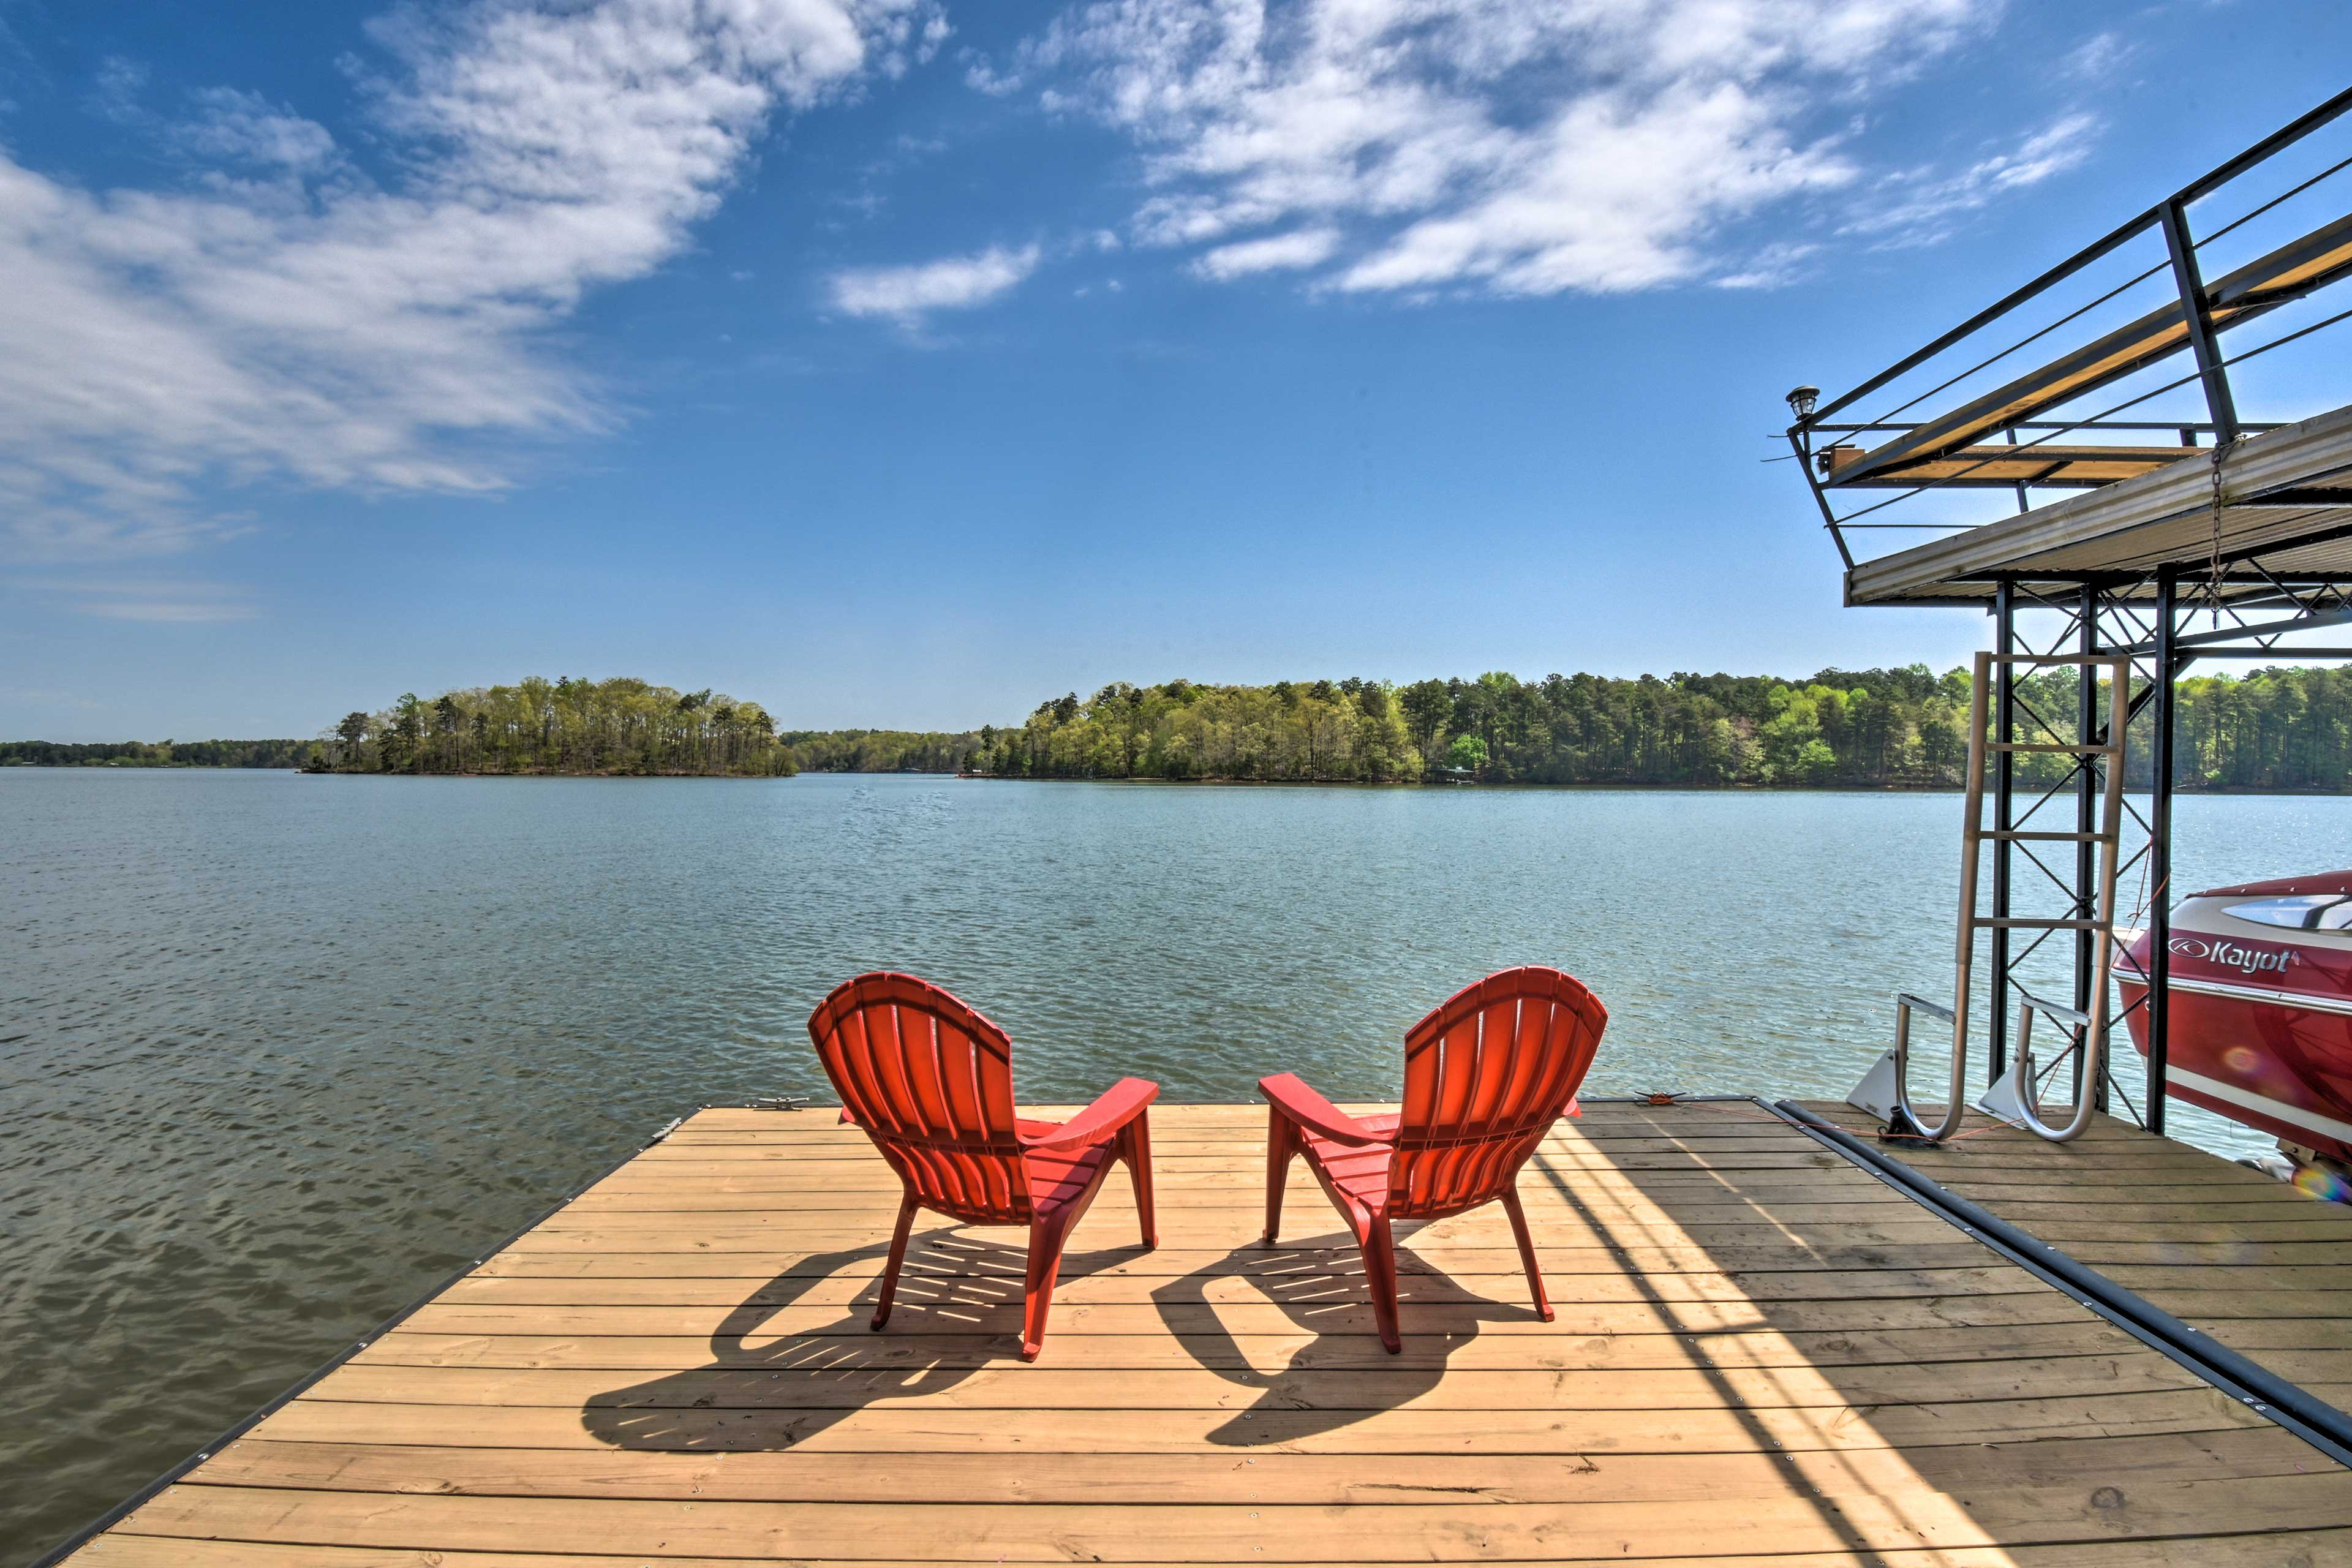 The property has a private dock and boat slip right on Lake Lanier.